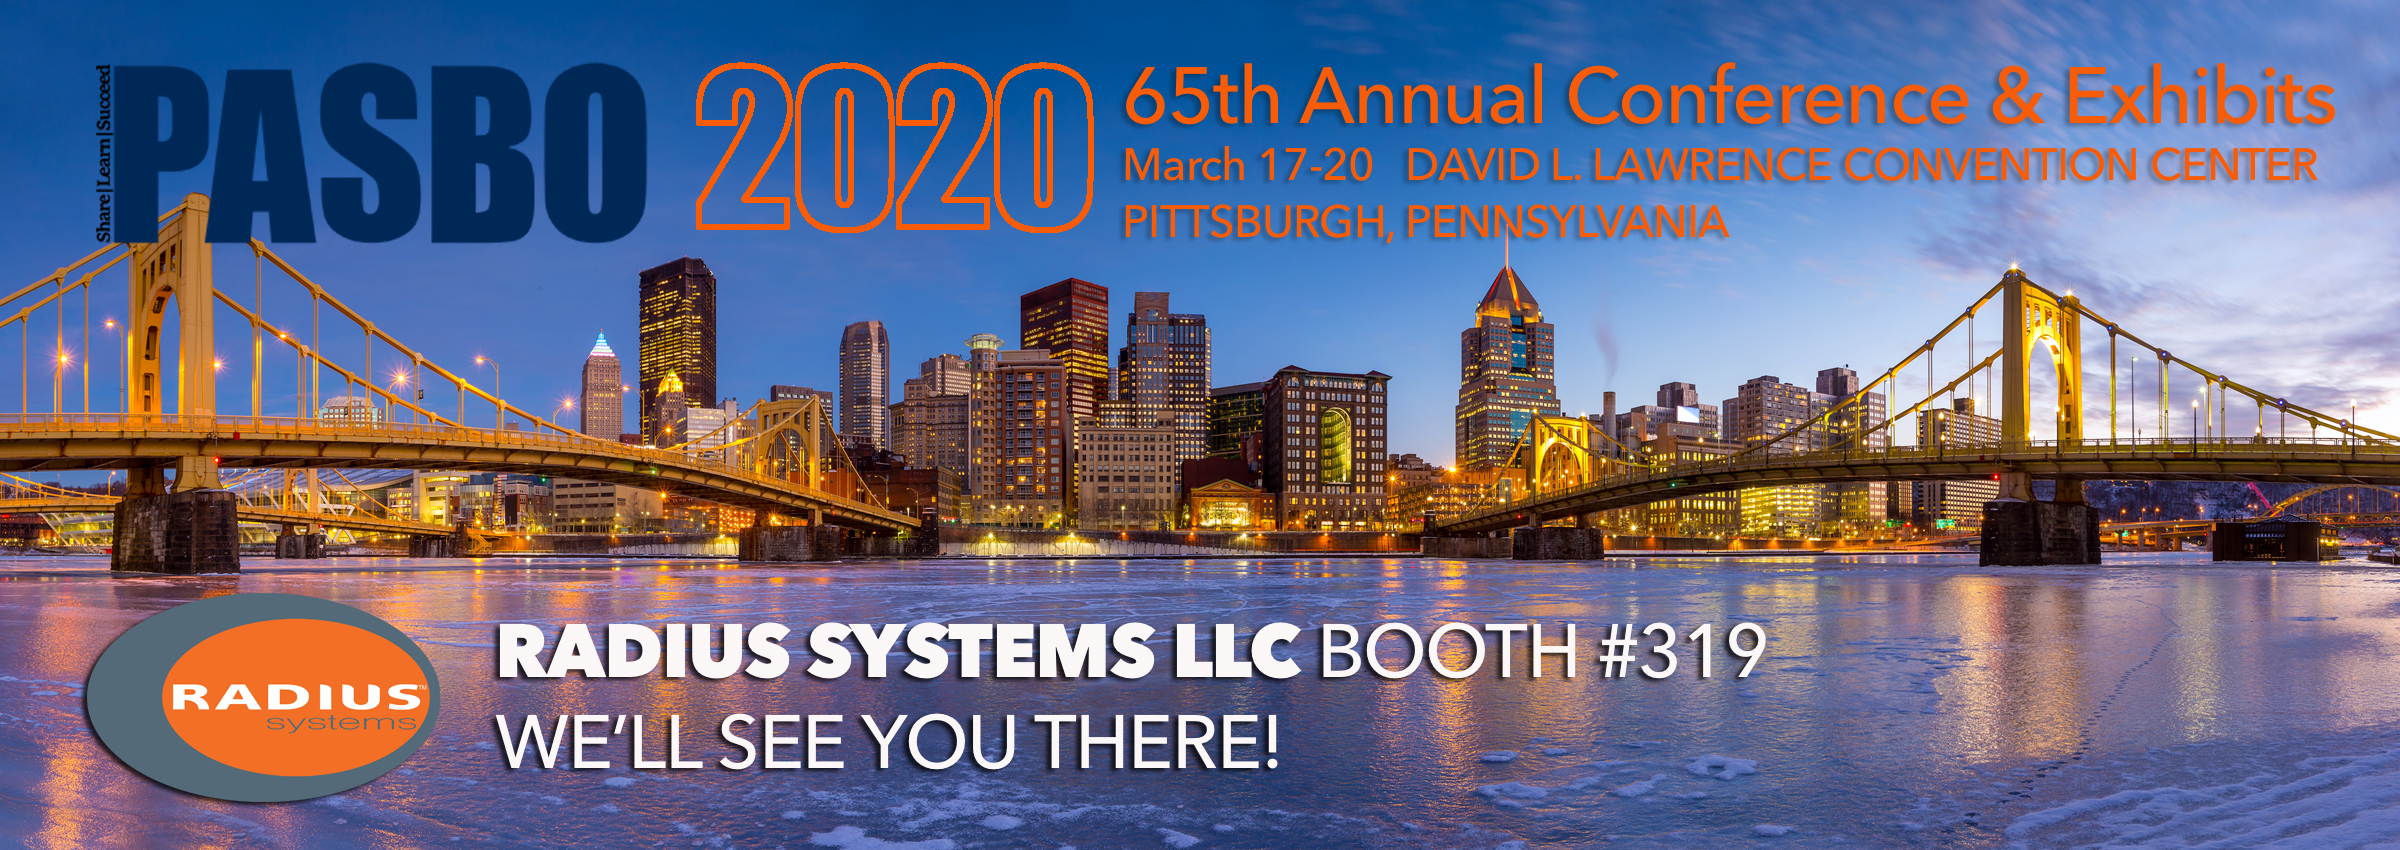 PASBO, PASBO conference, PASBO expo, Radius Systems, BAS, Building Automation, K-12 BAS, K-12 Security; Security; integrated lighting